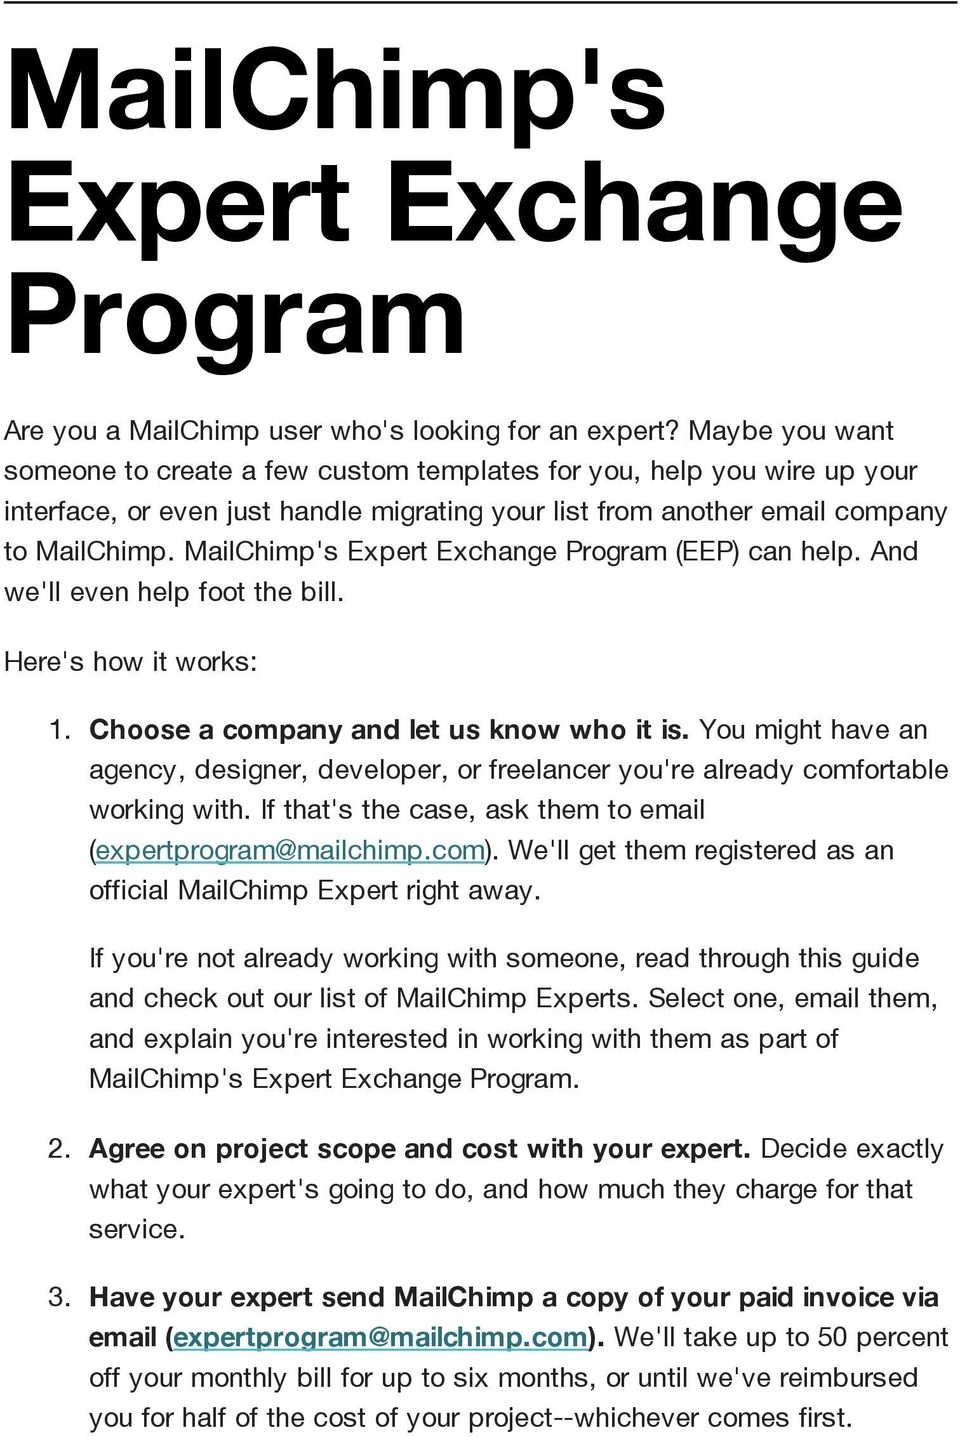 MailChimp's Expert Exchange Program (EEP) can help. And we'll even help foot the bill. Here's how it works: 1. Chooseacompany andlet usknowwhoitis.